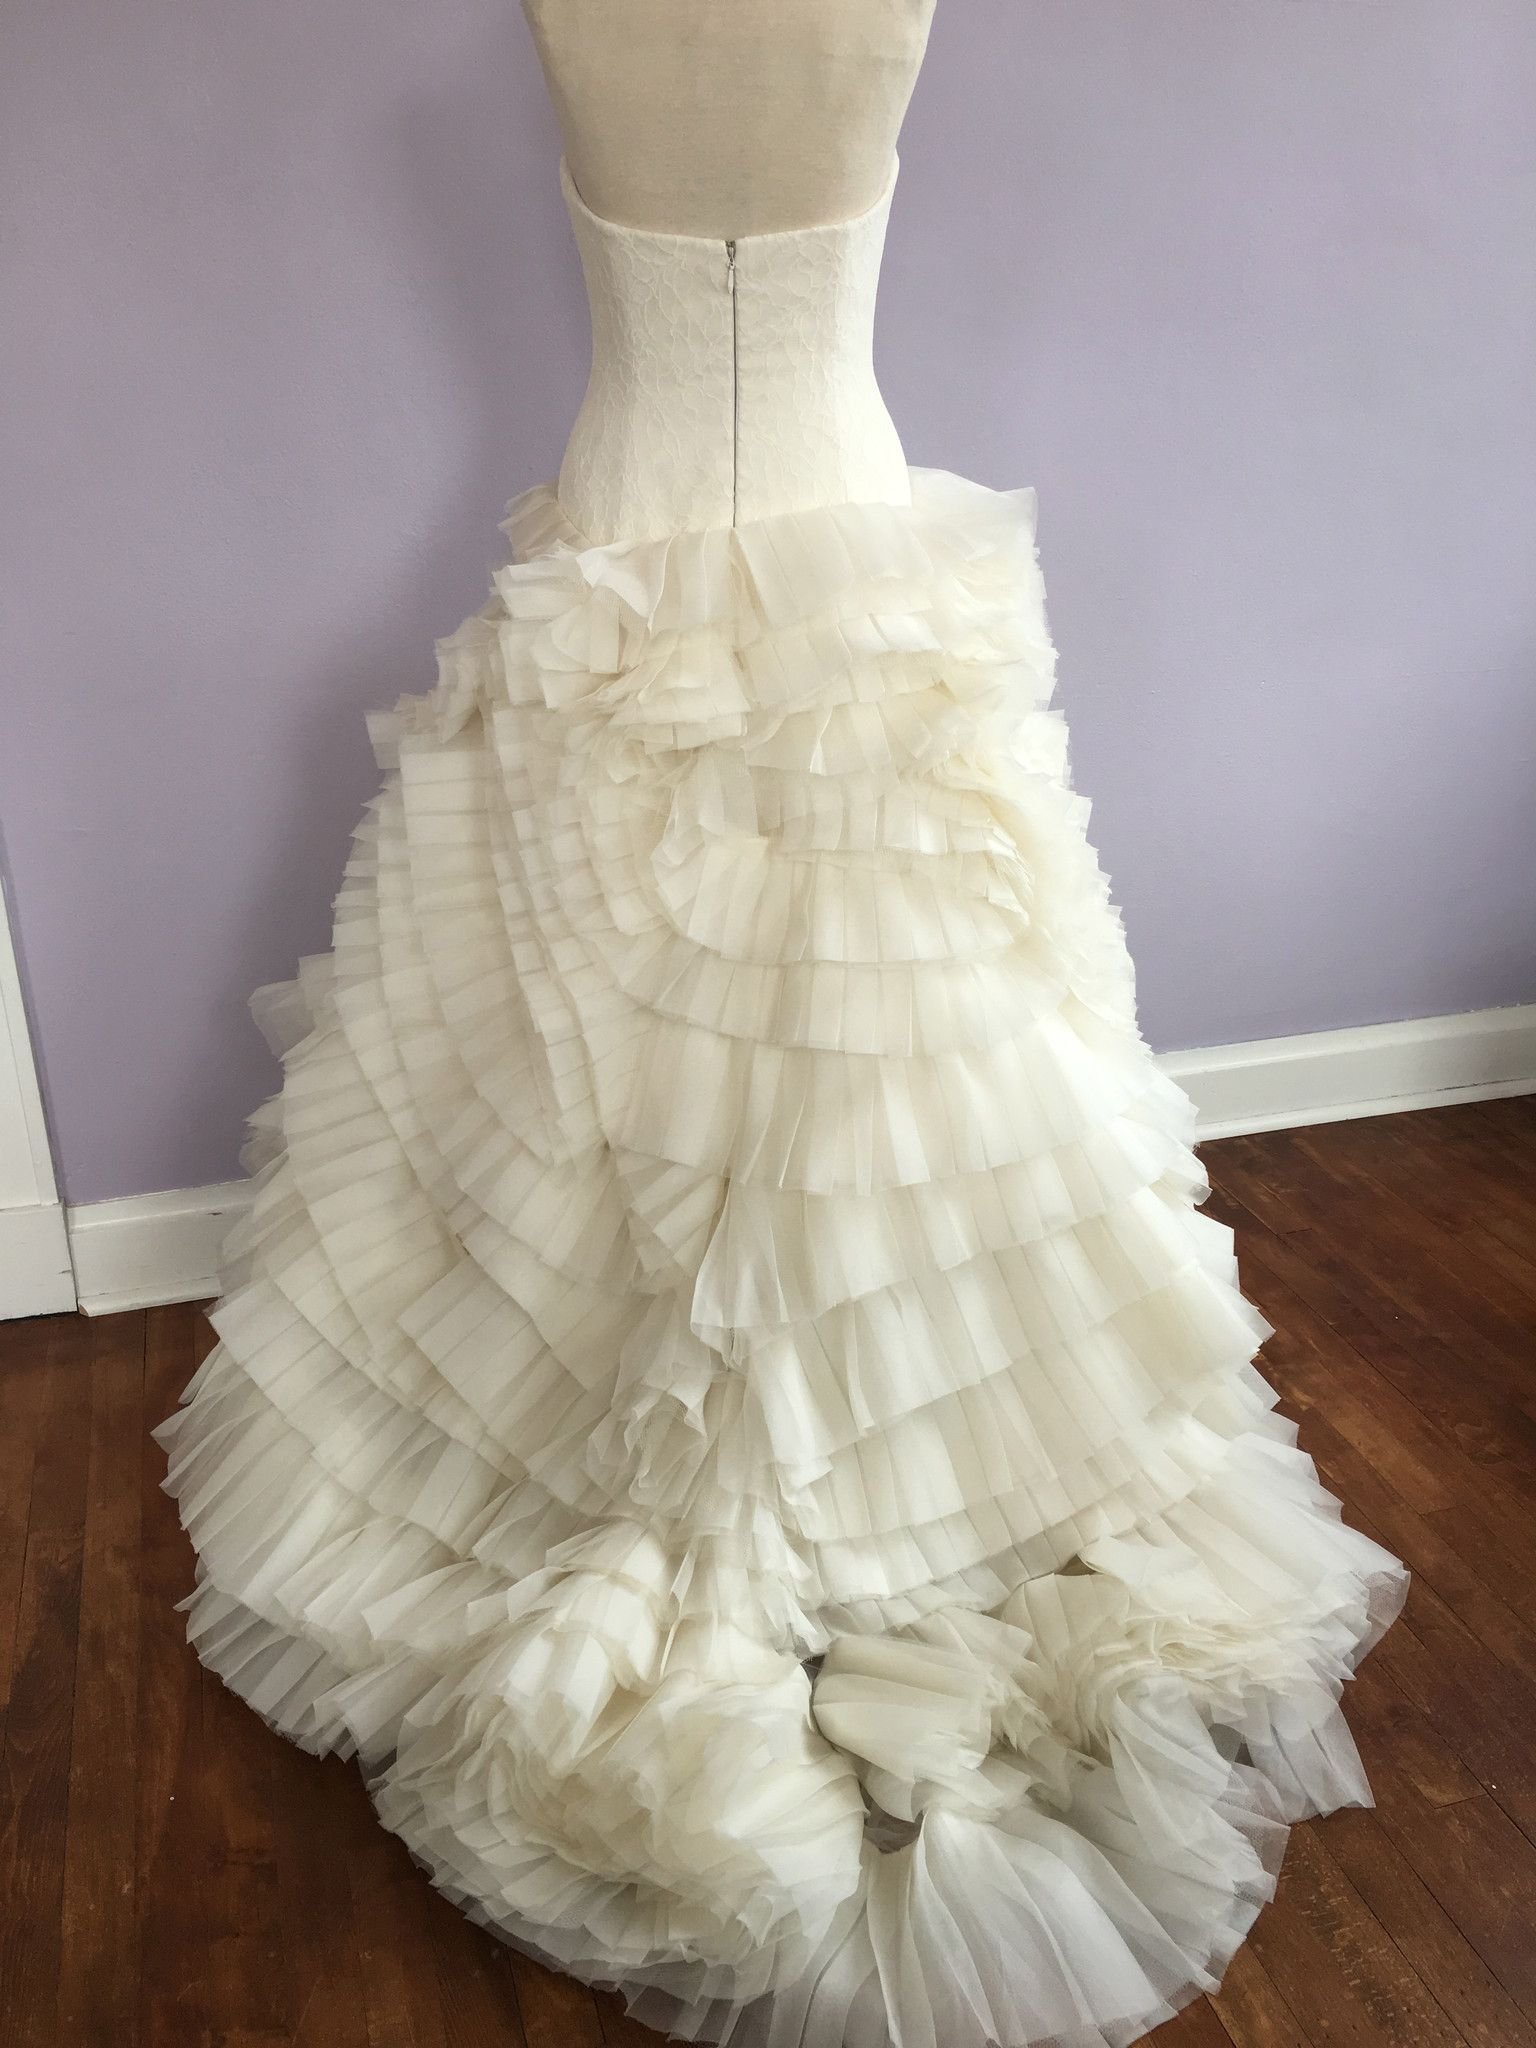 Vera Wang Leah Is A Dramatic Ball Gown The Corset Inspired Bodice Features Romantic Lace And A Silver Wedding Favors Designer Bridal Gowns Wedding Favors Fall